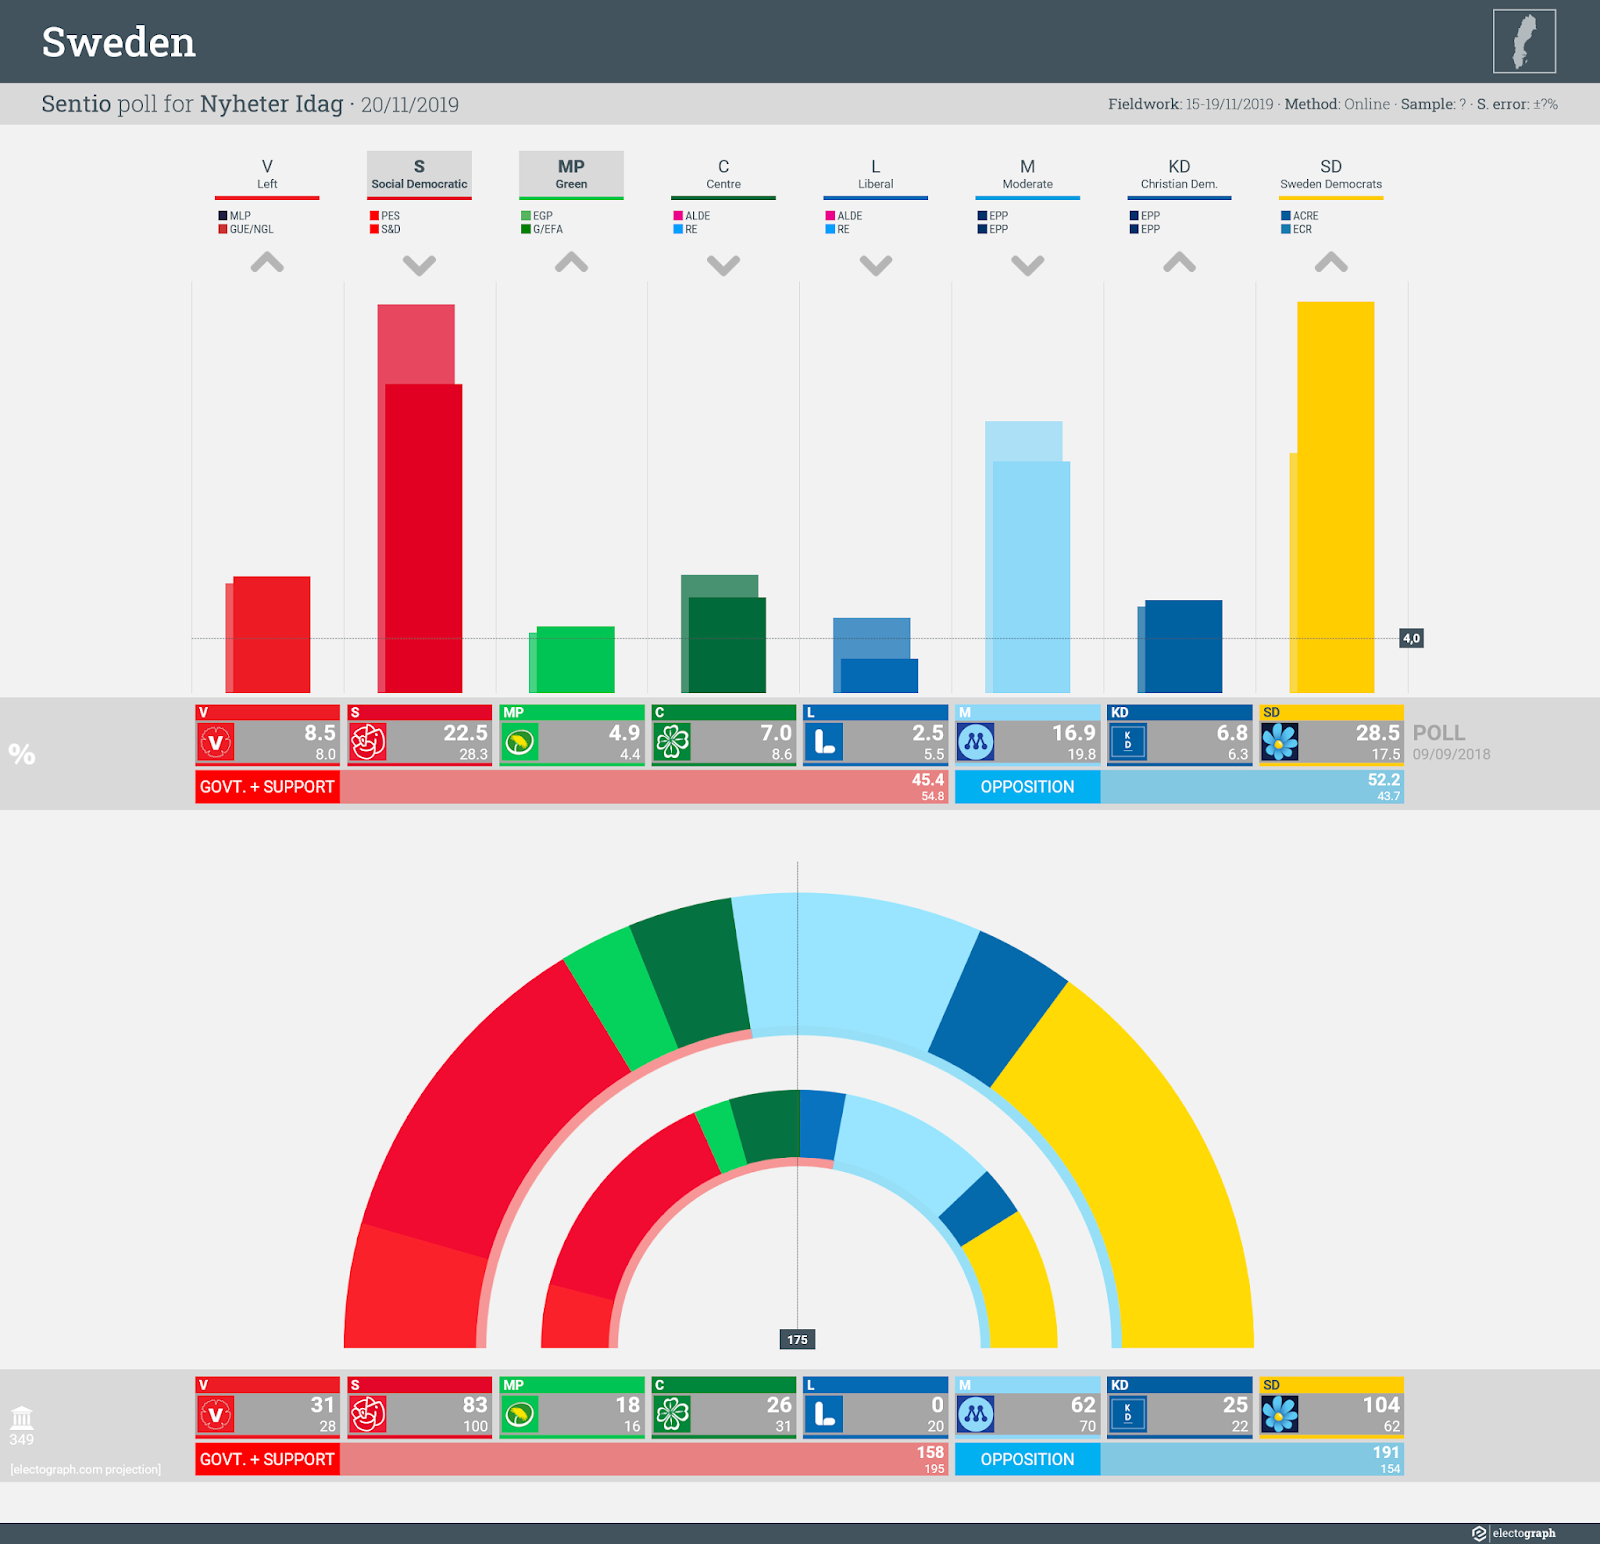 SWEDEN: Sentio poll chart for Nyheter Idag, 20 November 2019